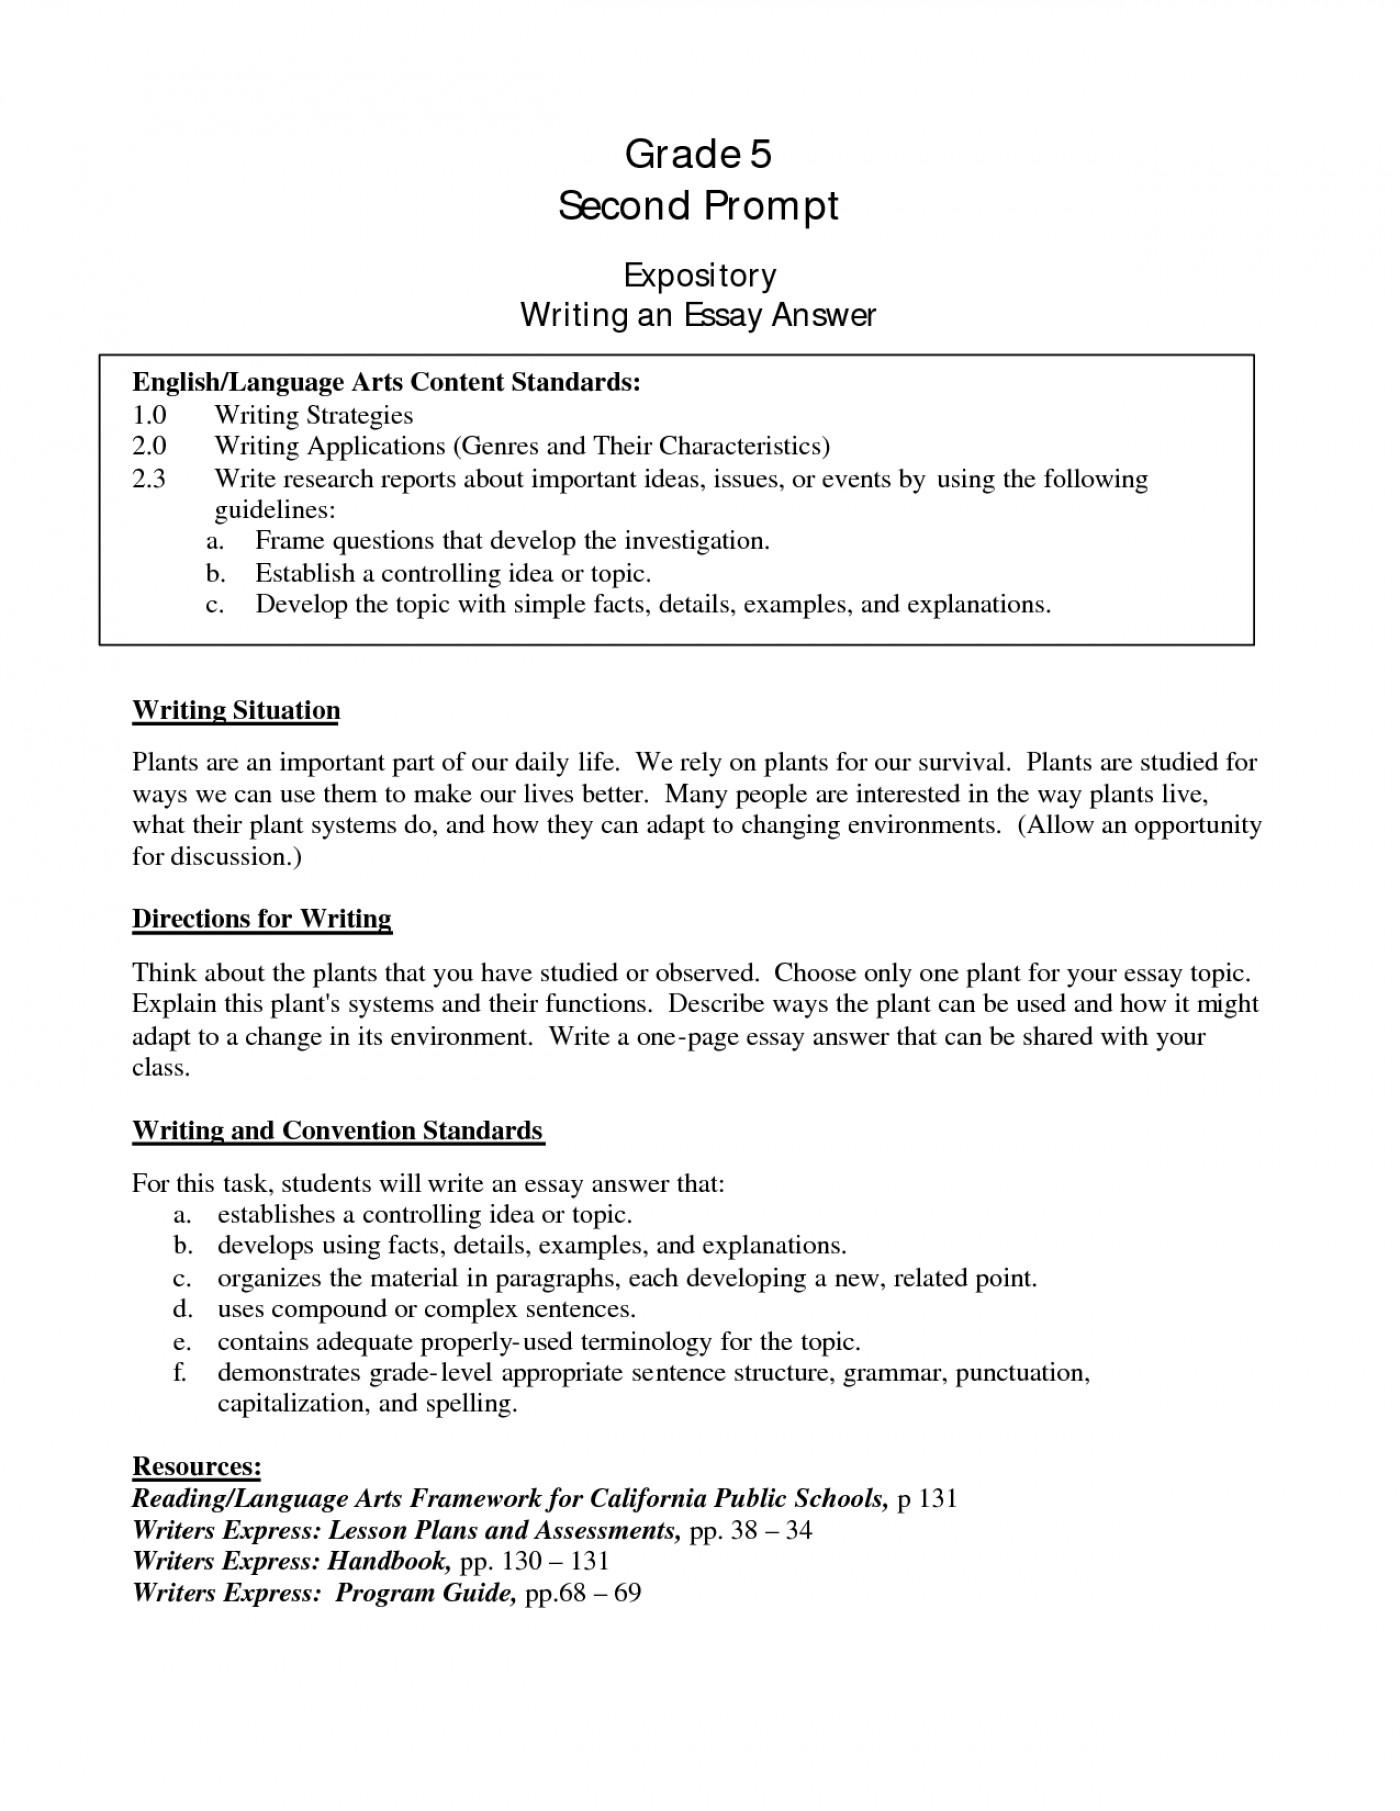 Courseworks premium college paper writing help